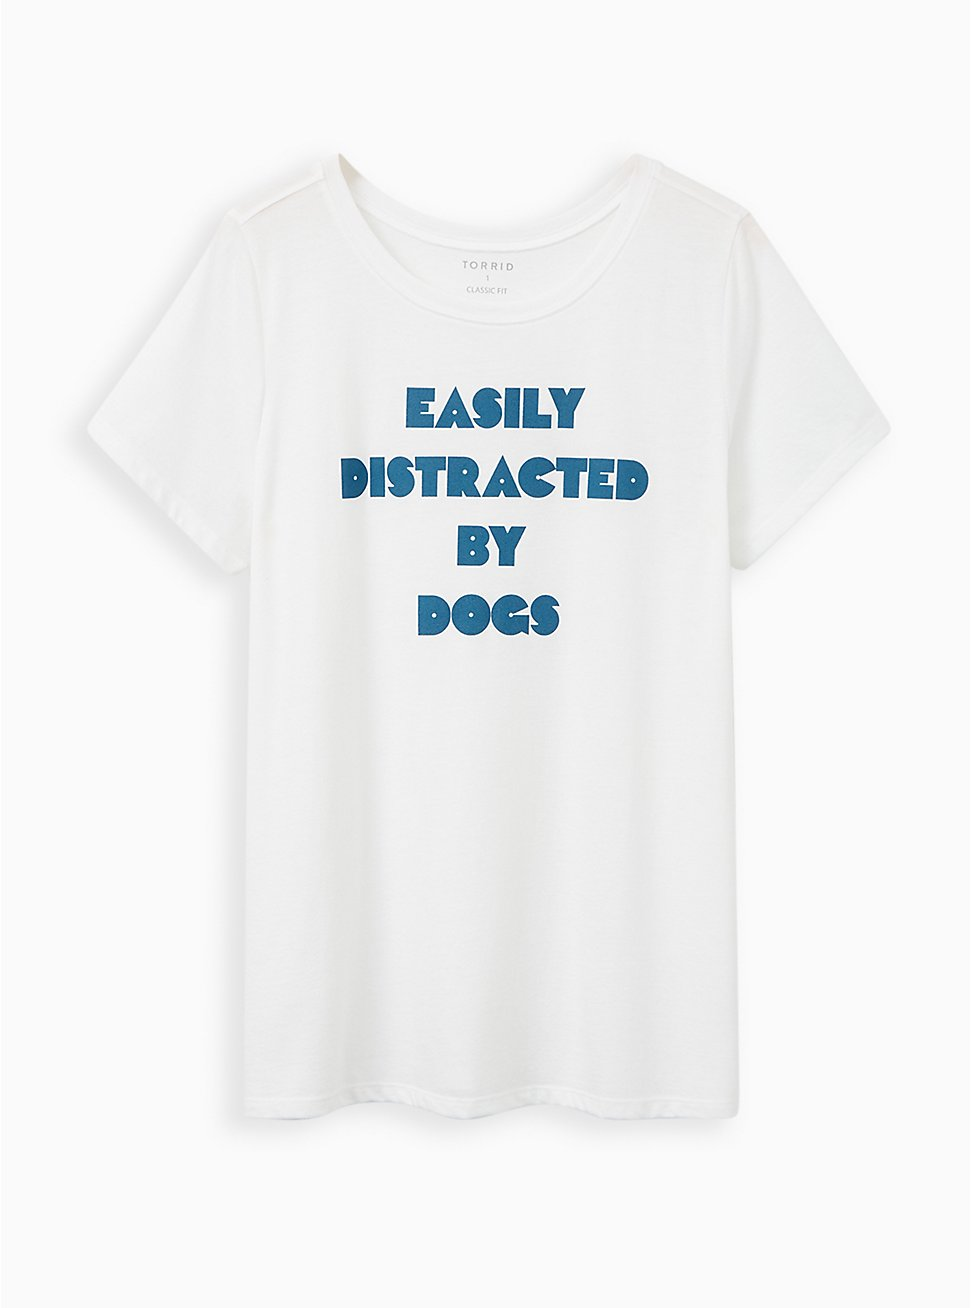 Everyday Tee - Signature Jersey White Easily Distracted, BRIGHT WHITE, hi-res